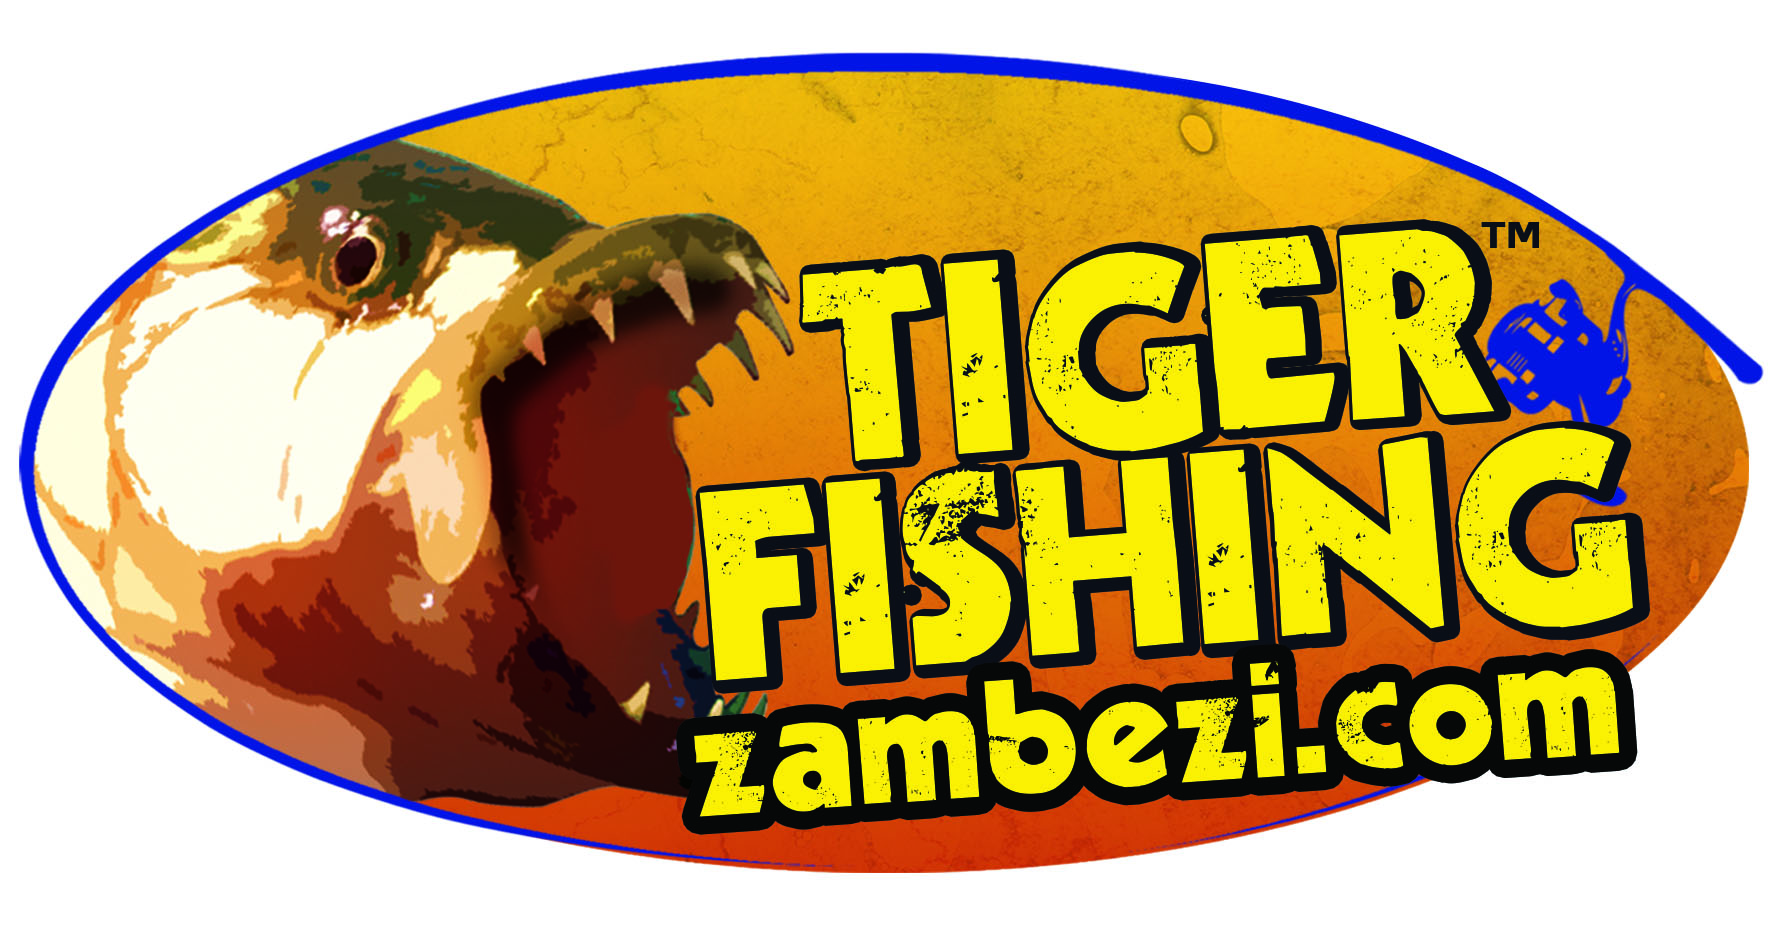 TigerFishingZambezi